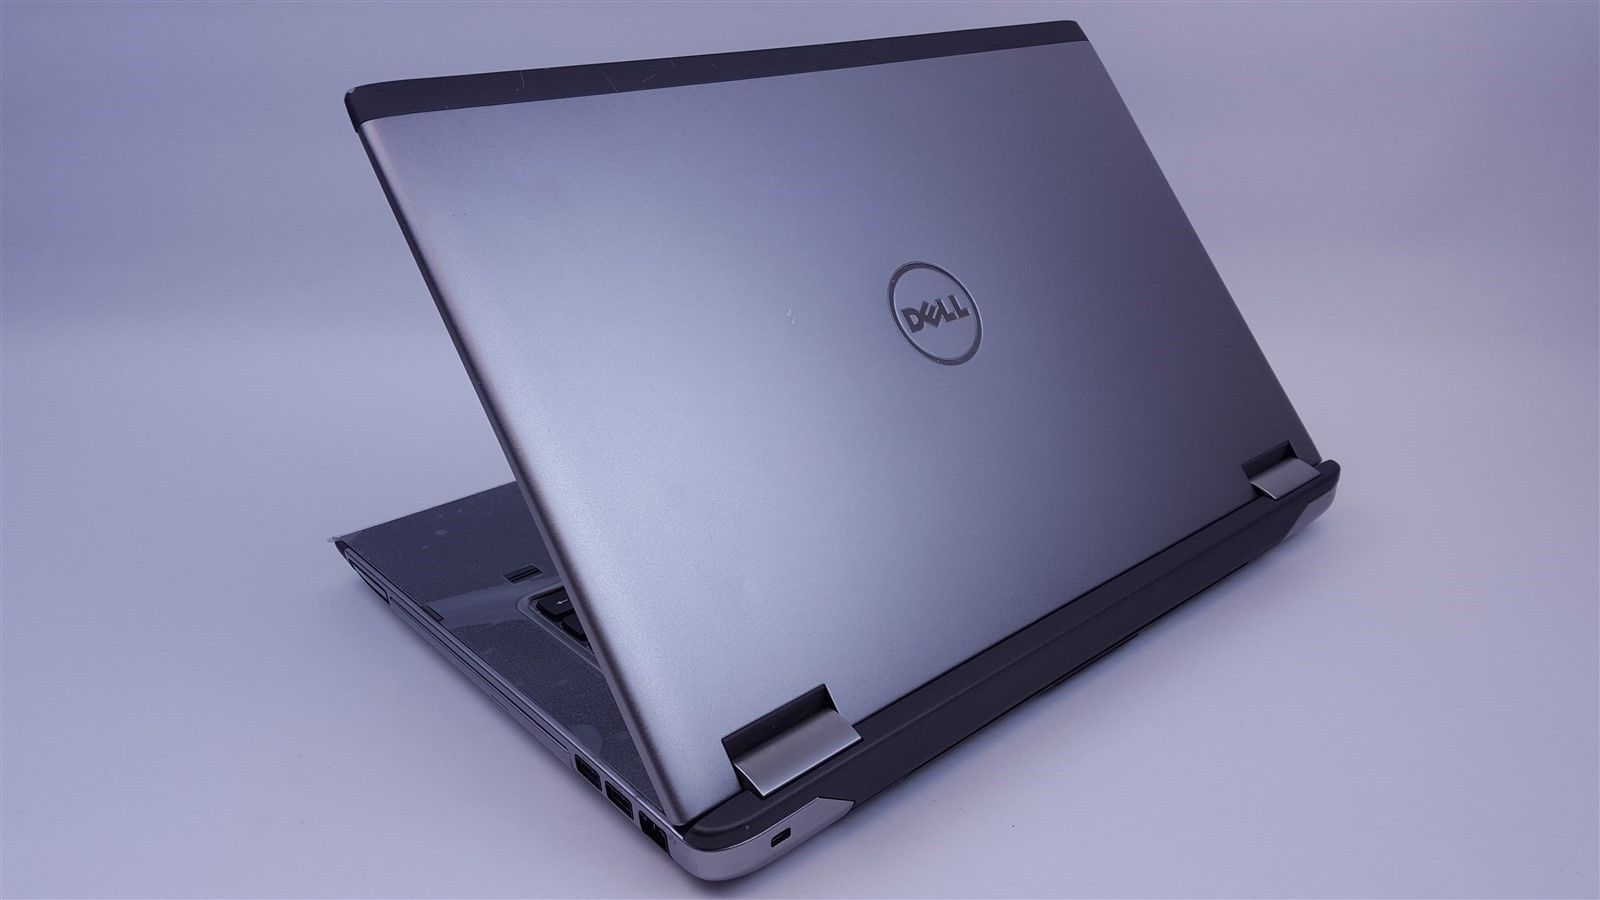 "Dell Vostro 15 3560 15.6"" I5-3210M 2.5GHz 8Gb 160Gb DVDRW Fingerprint Windows 10"